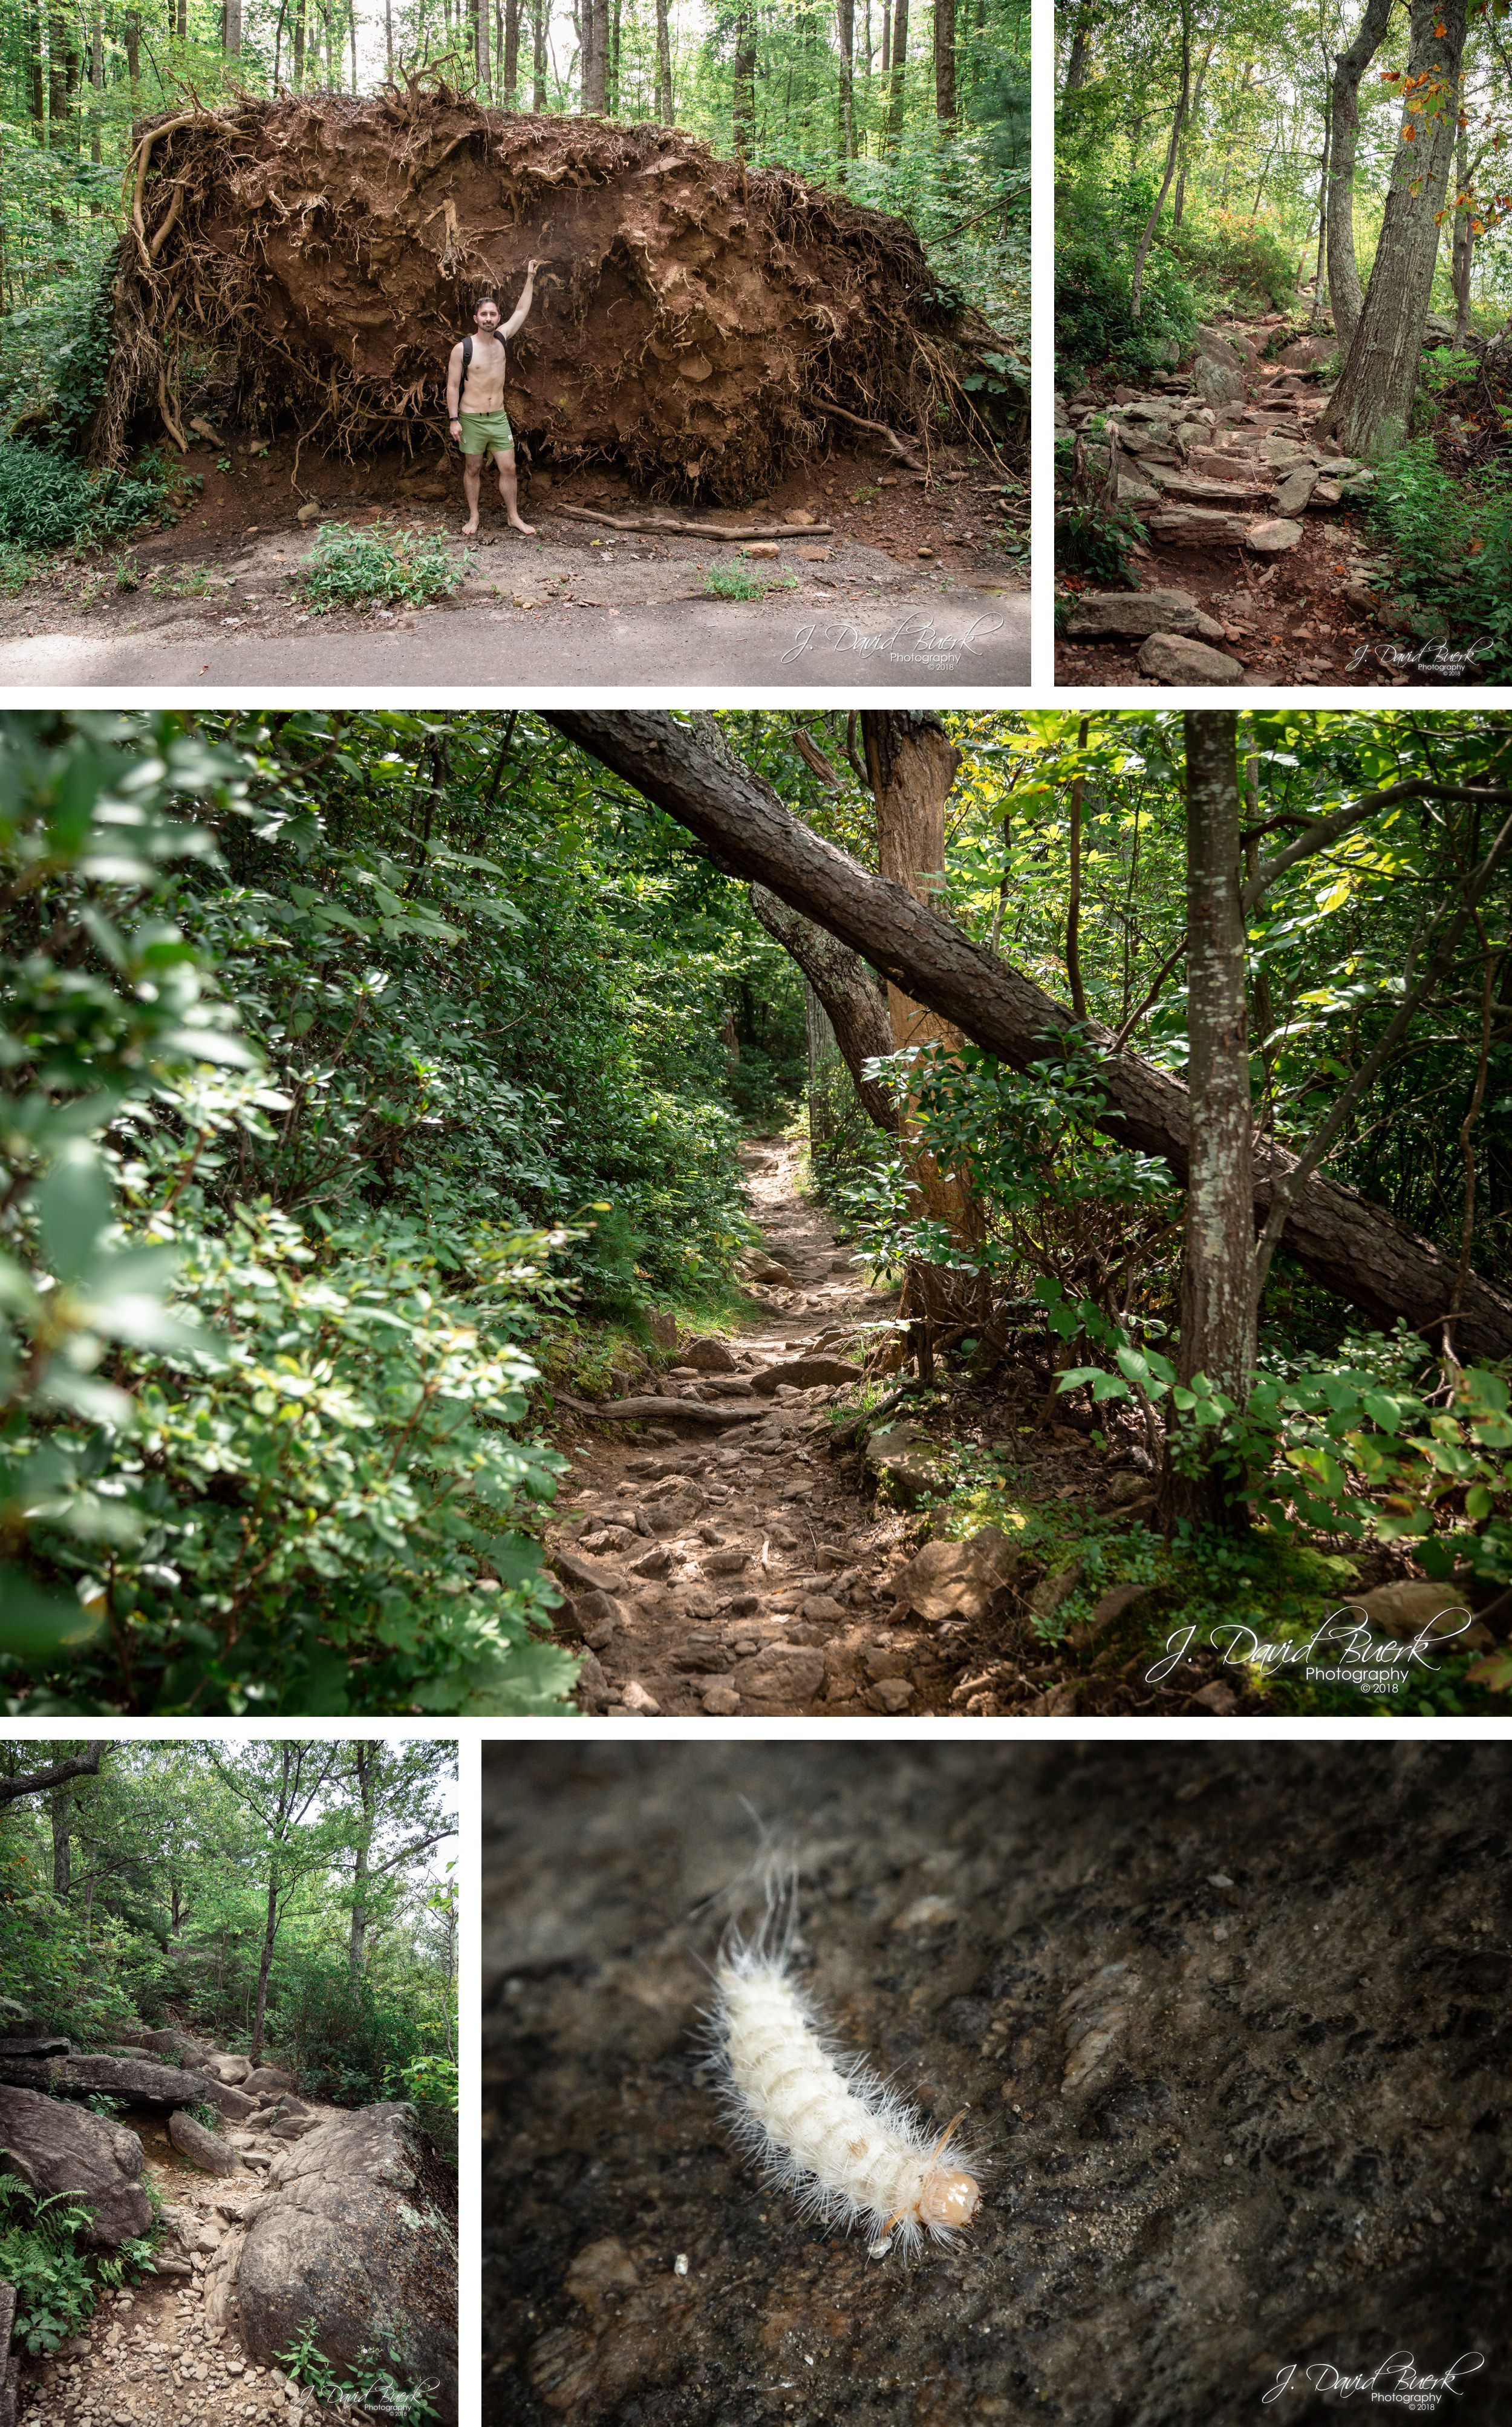 20180826 - Old Rag Mountain August 2018 2.jpg